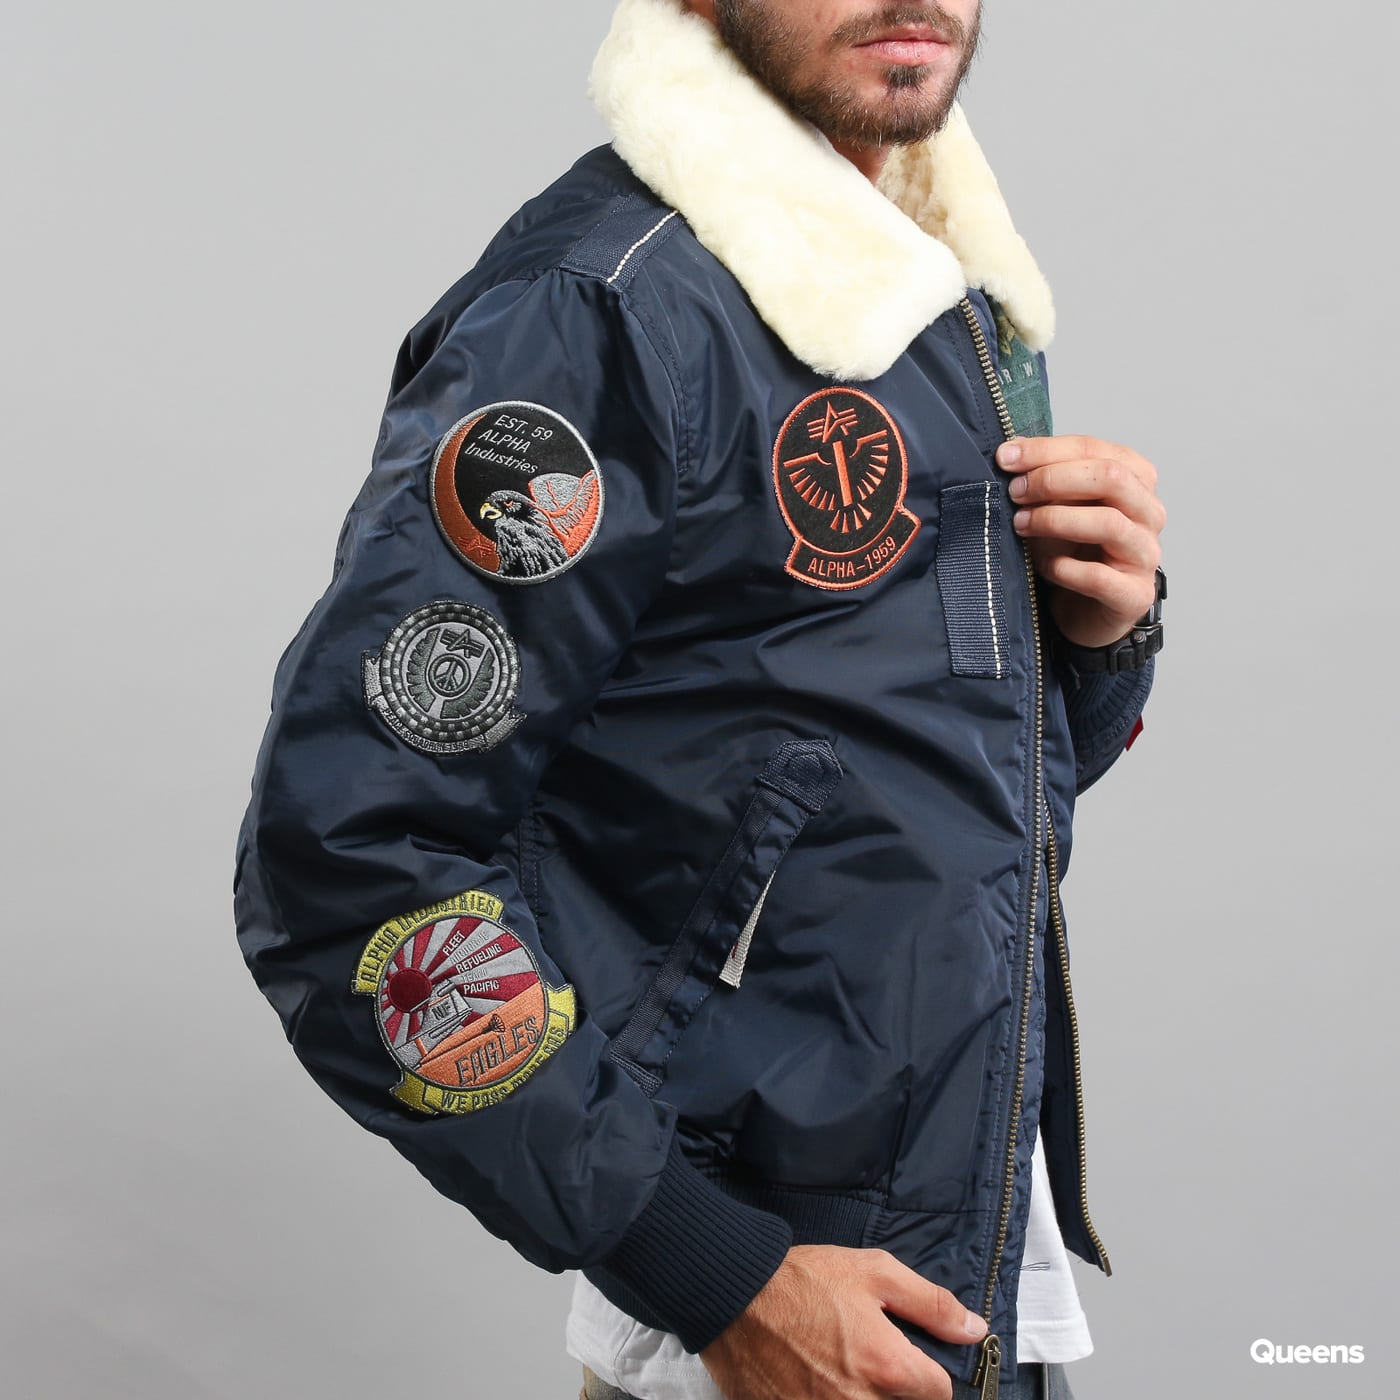 f87bb4c0e4 Zoom in Zoom in Zoom in Zoom in Zoom in Zoom in. Alpha Industries Injector  III Patch navy